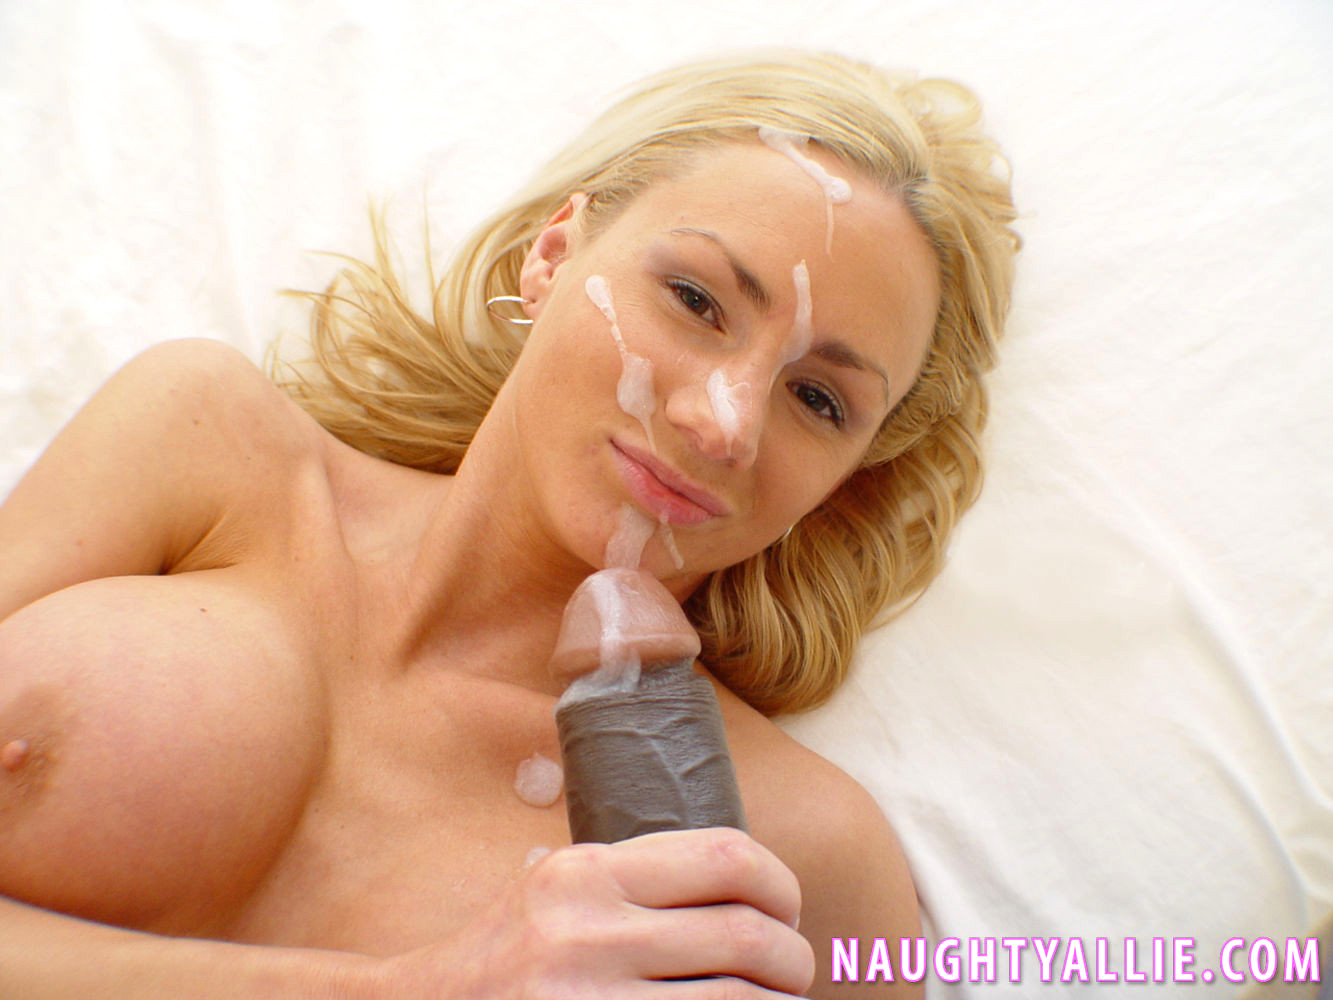 Naughty allie chase